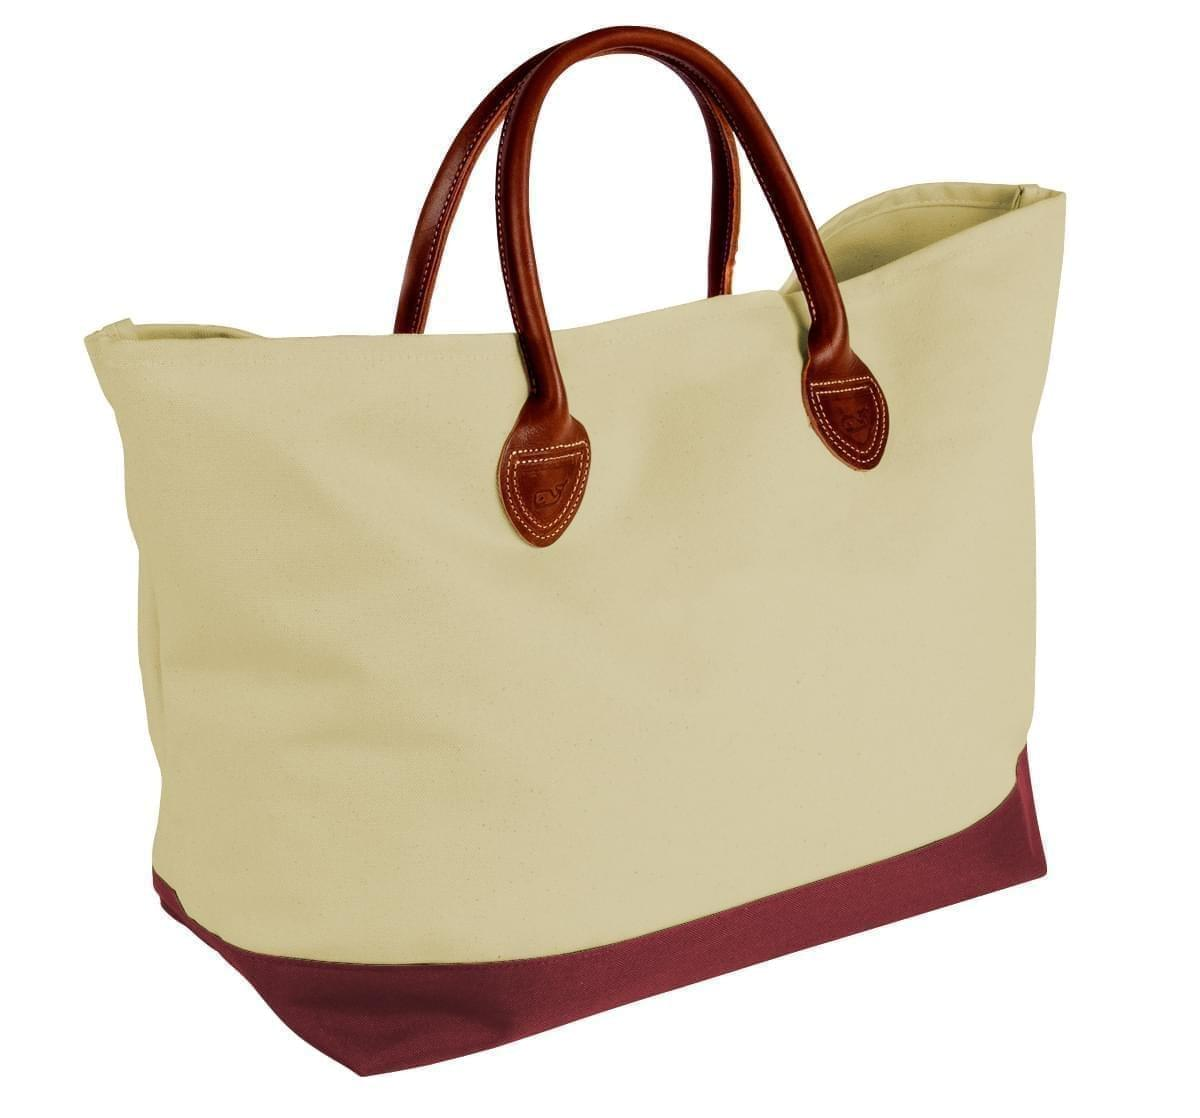 USA Made Canvas Leather Handle Totes, Natural-Burgundy, 10899-EK9